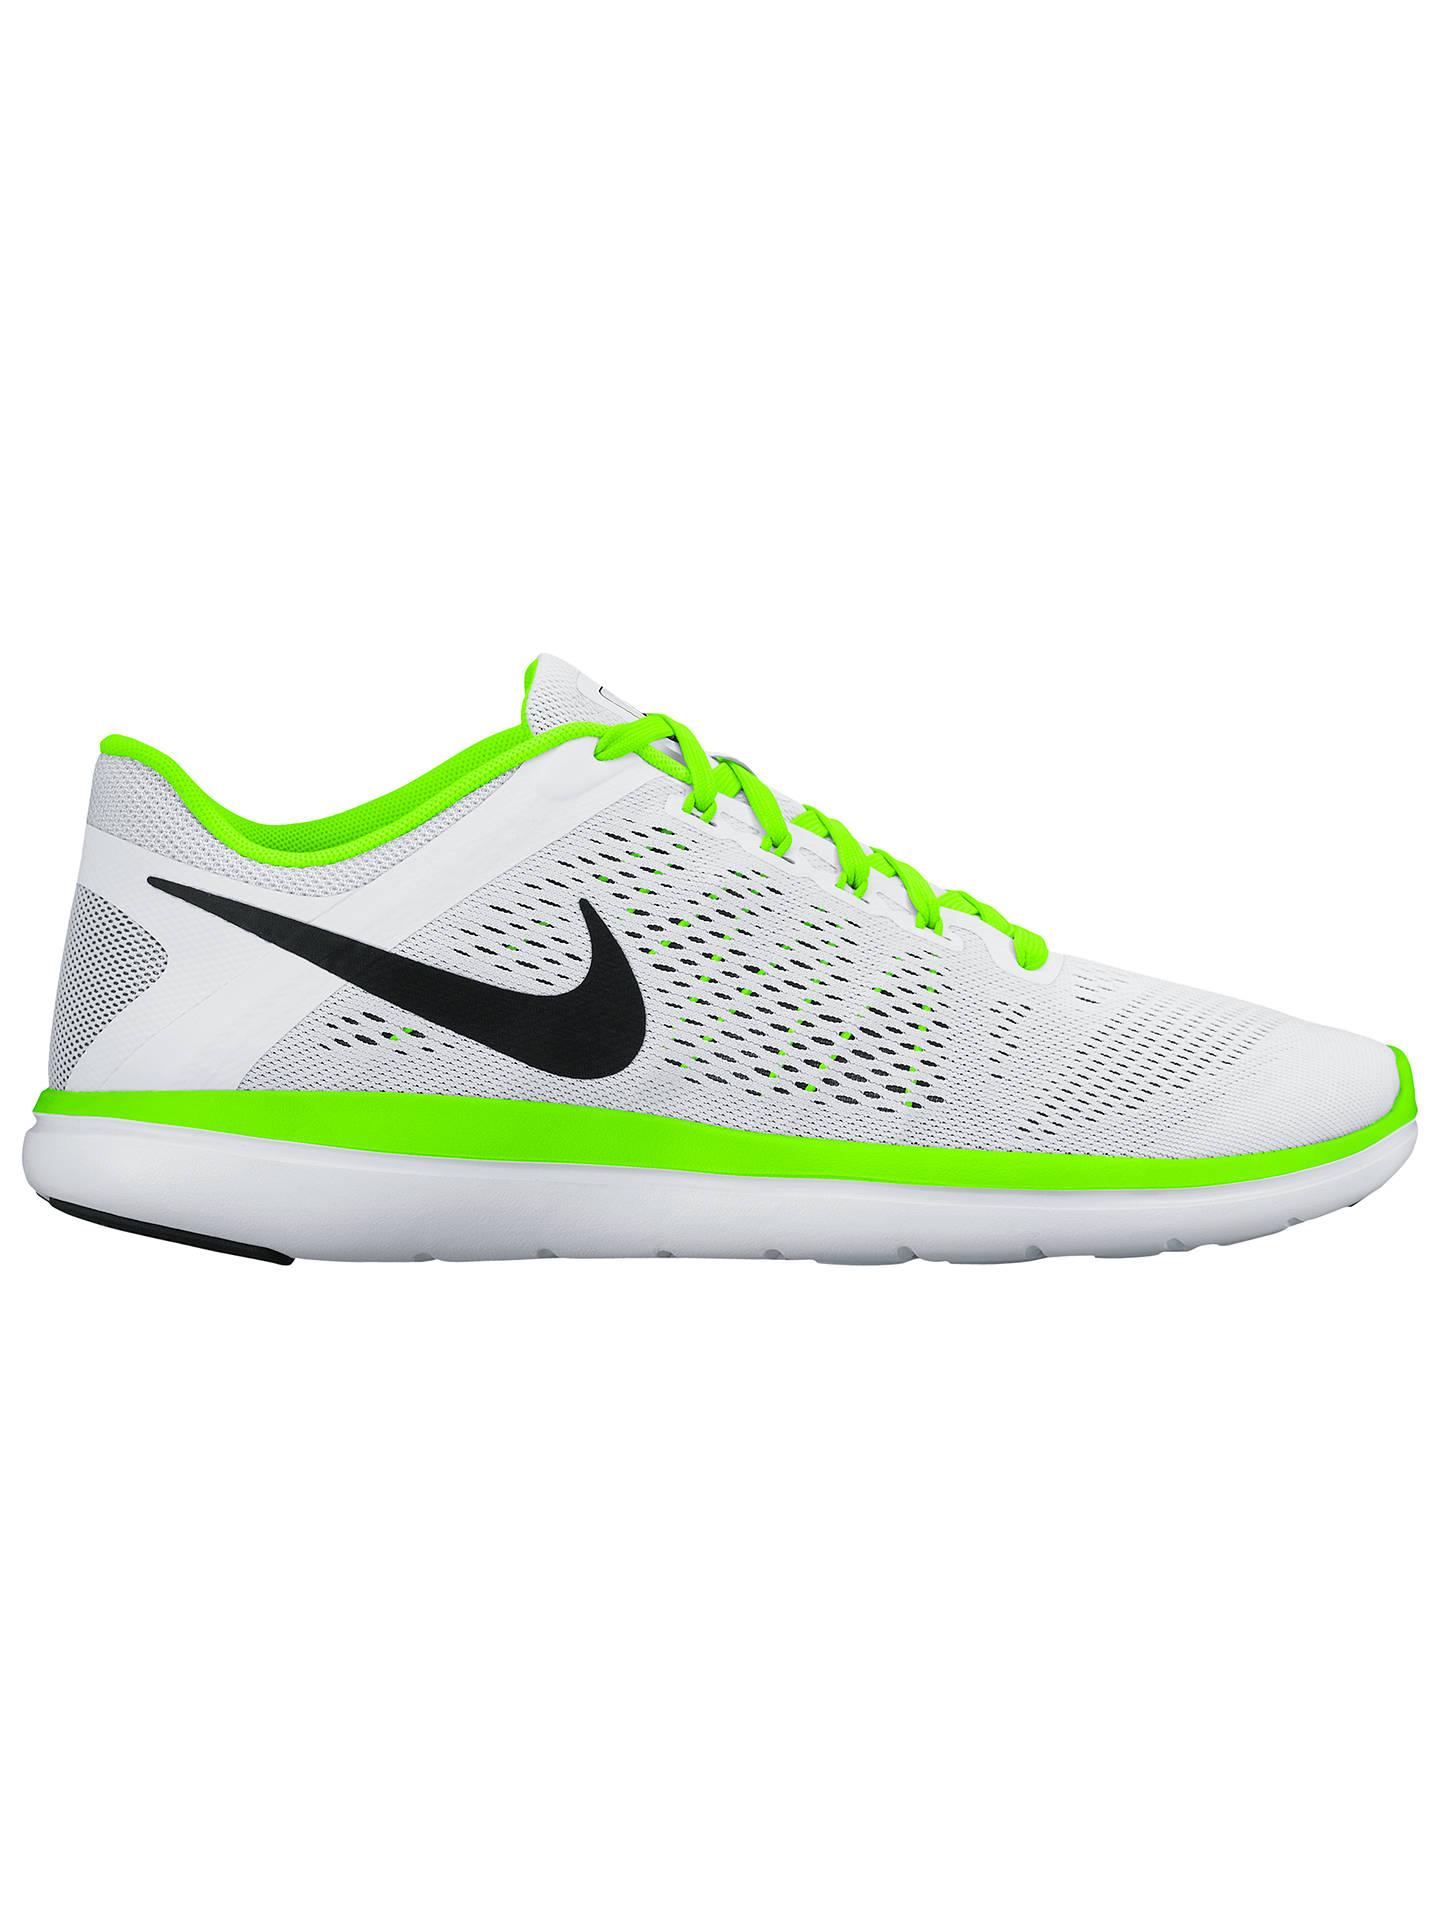 detailed look 0375b fd40b Buy Nike Flex 2016 RN Men s Running Shoes, White Green, 7 Online at ...